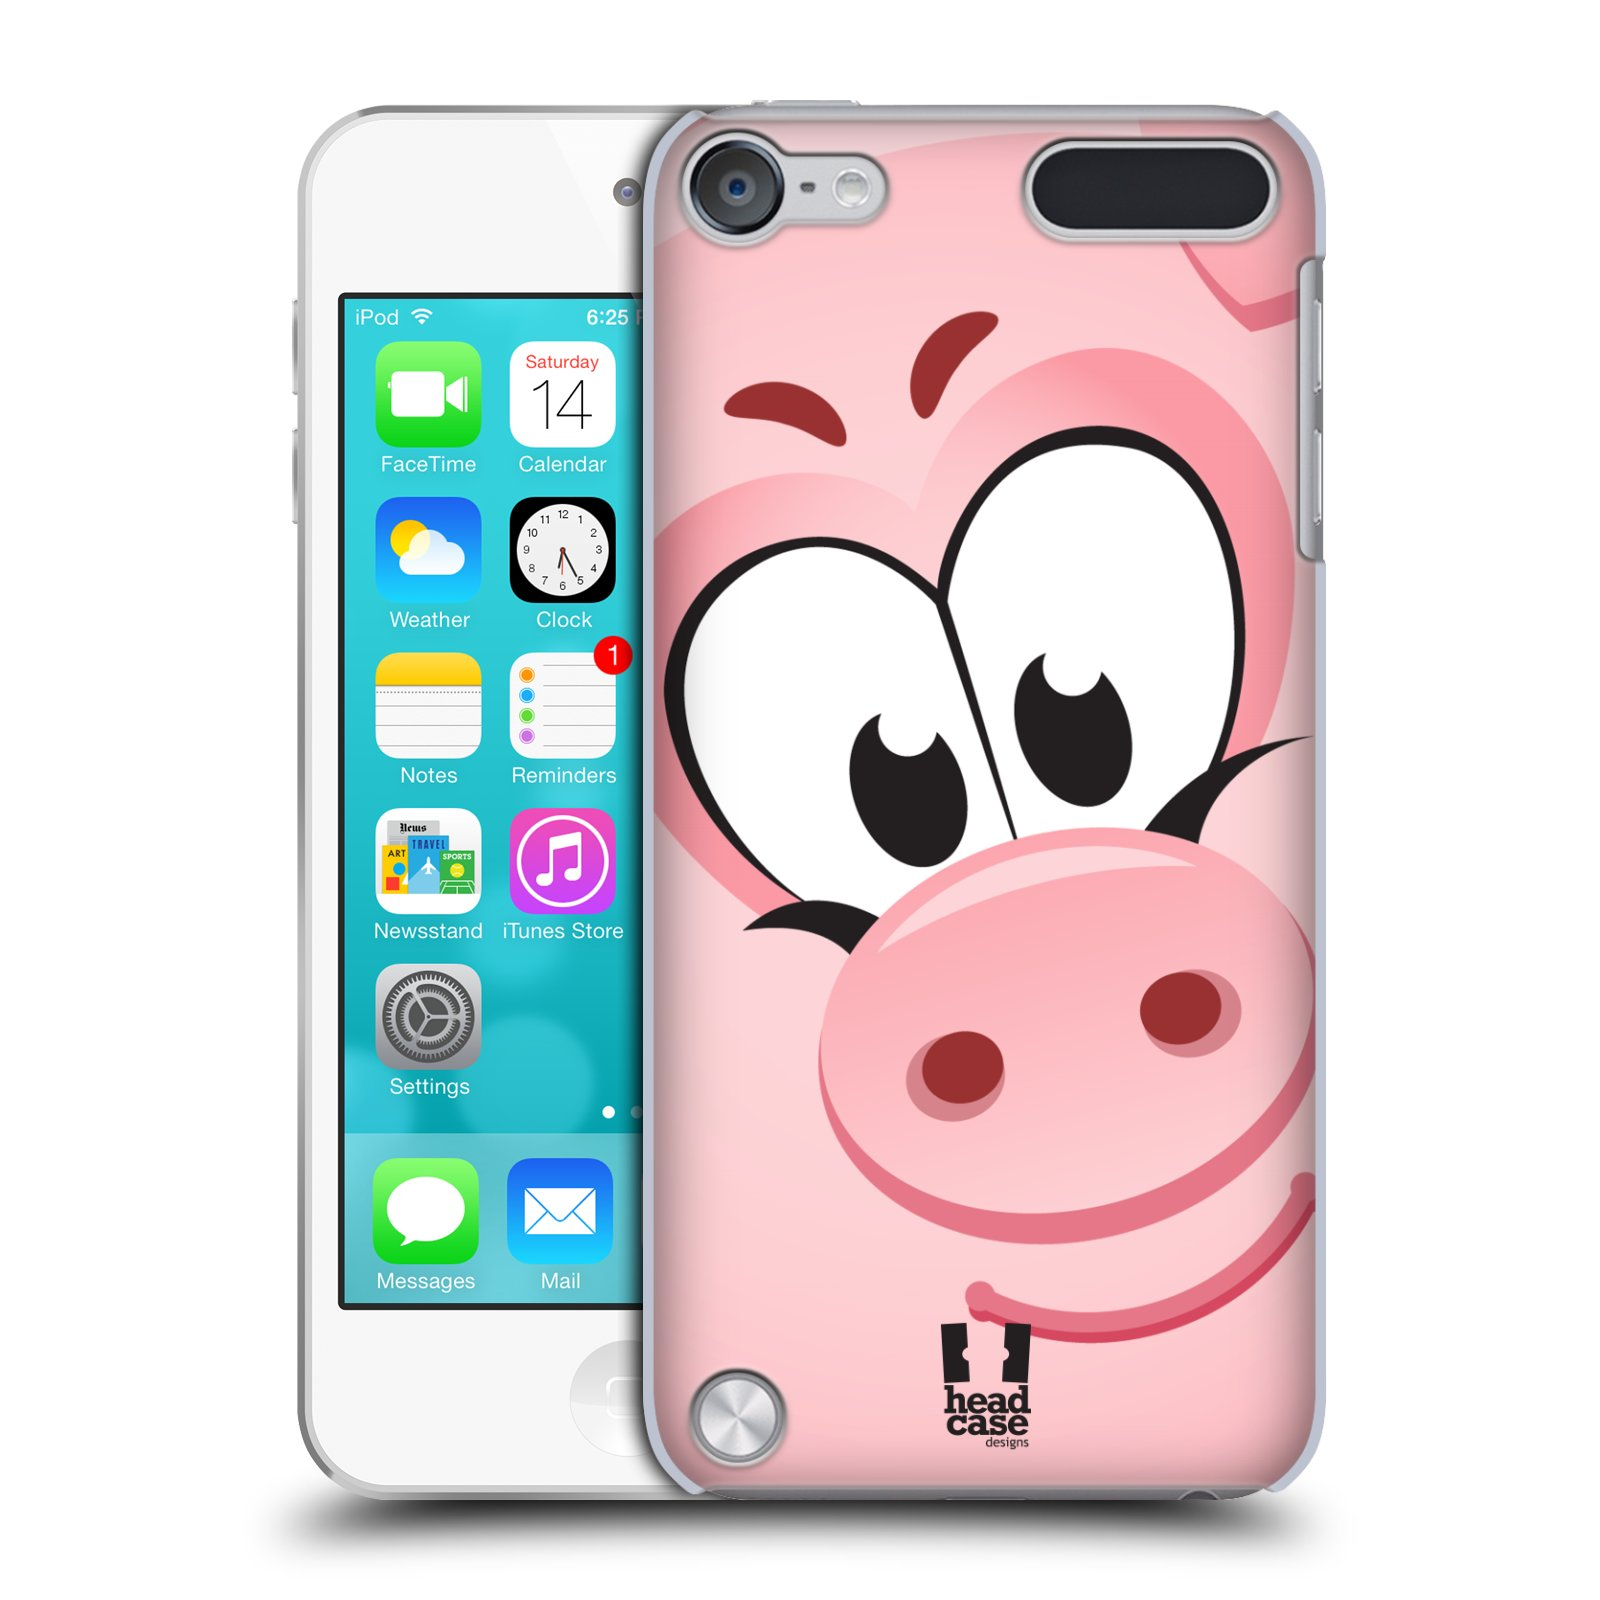 HEAD CASE DESIGNS SQUARE FACE ANIMALS CASE COVER FOR APPLE iPOD TOUCH 5G 5TH GEN